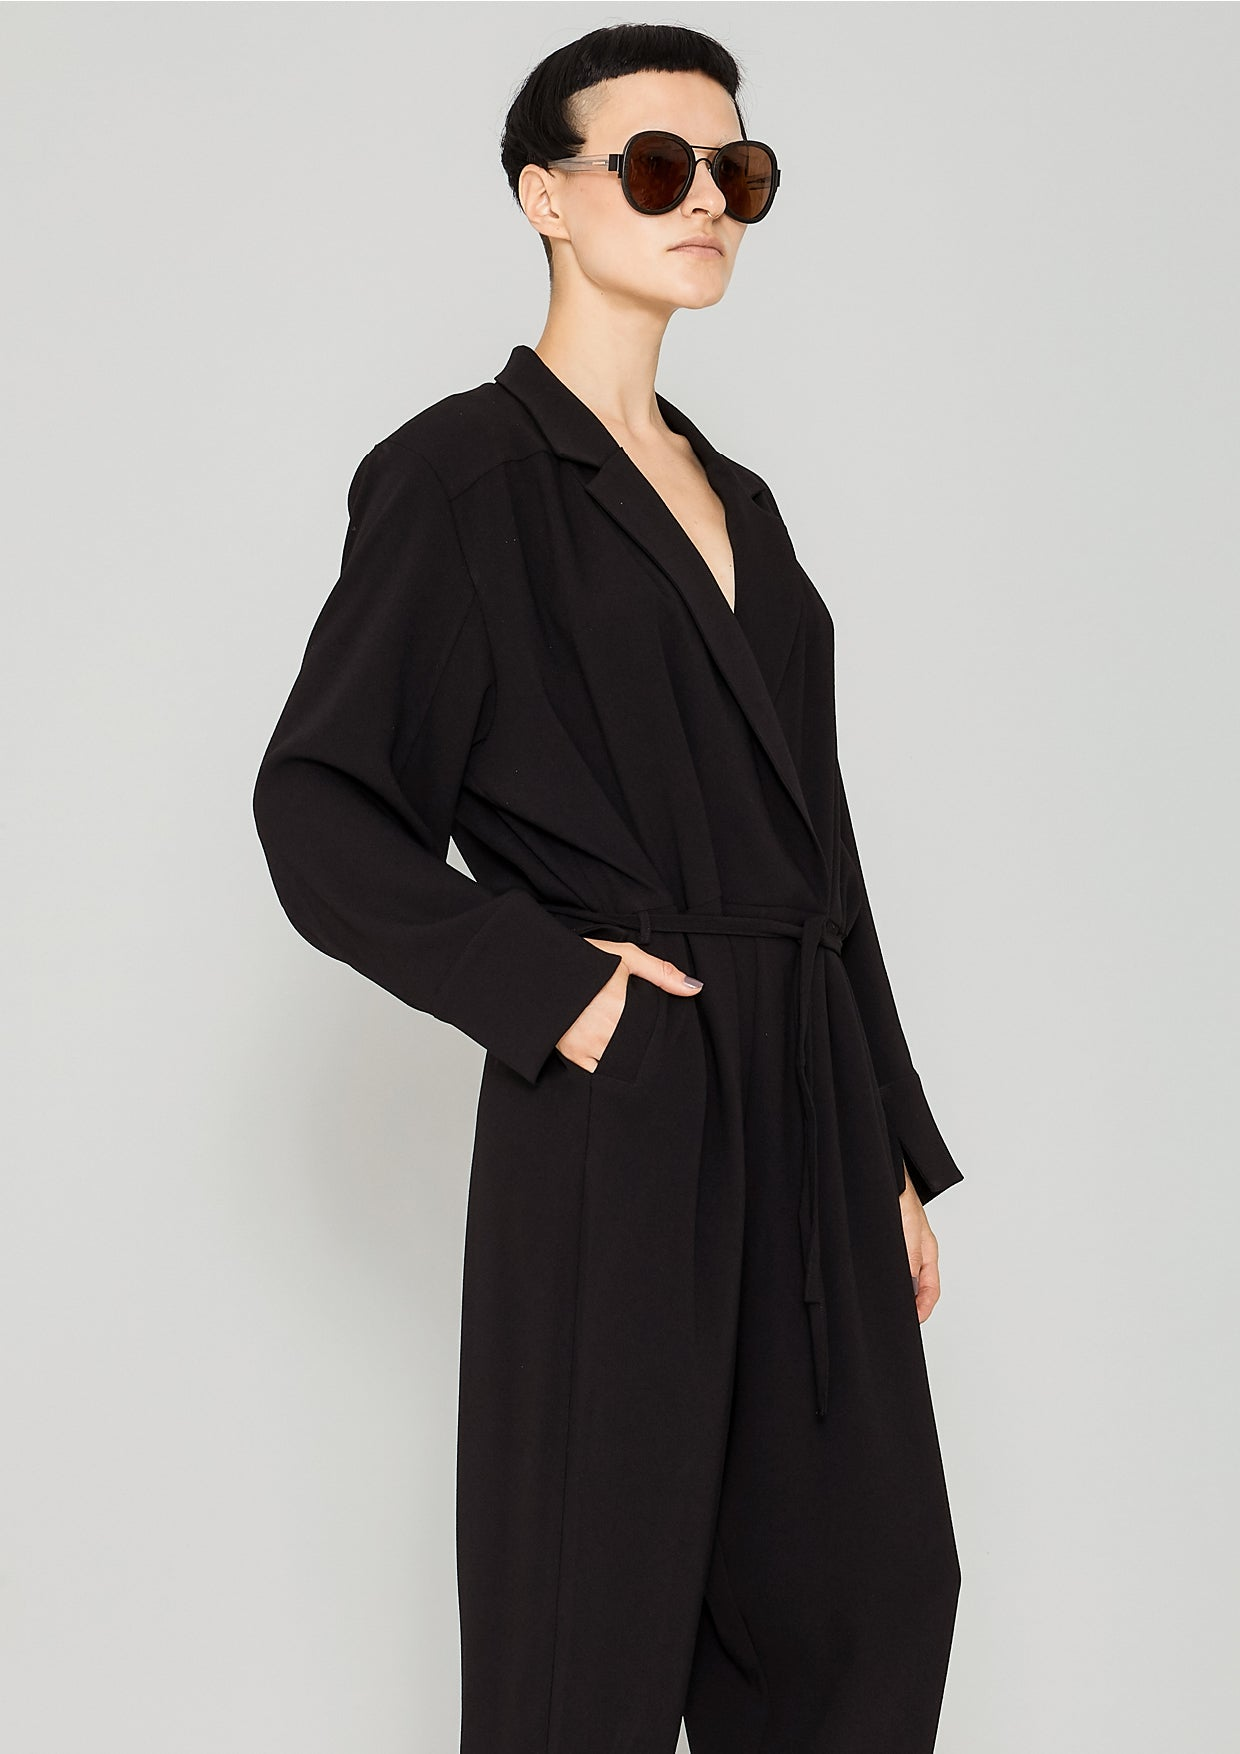 b797940fda7a JUMPSUIT REVERS LONG - HEAVY DRAPING black - BERENIK